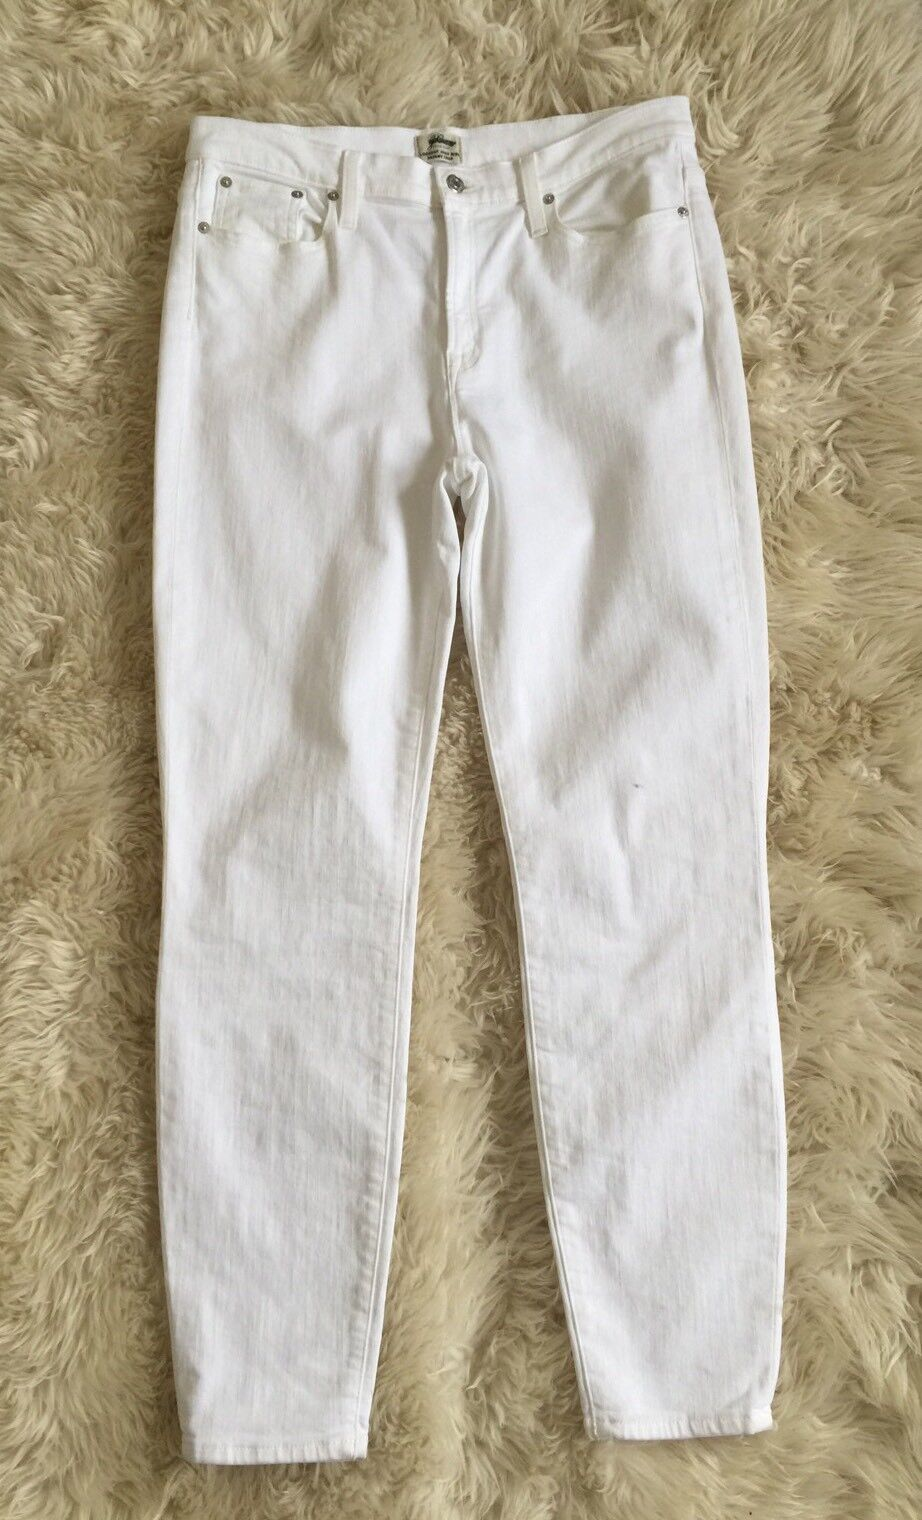 New Jcrew Tall 9  lookout high-rise crop jean in white C2751 Sz 32T